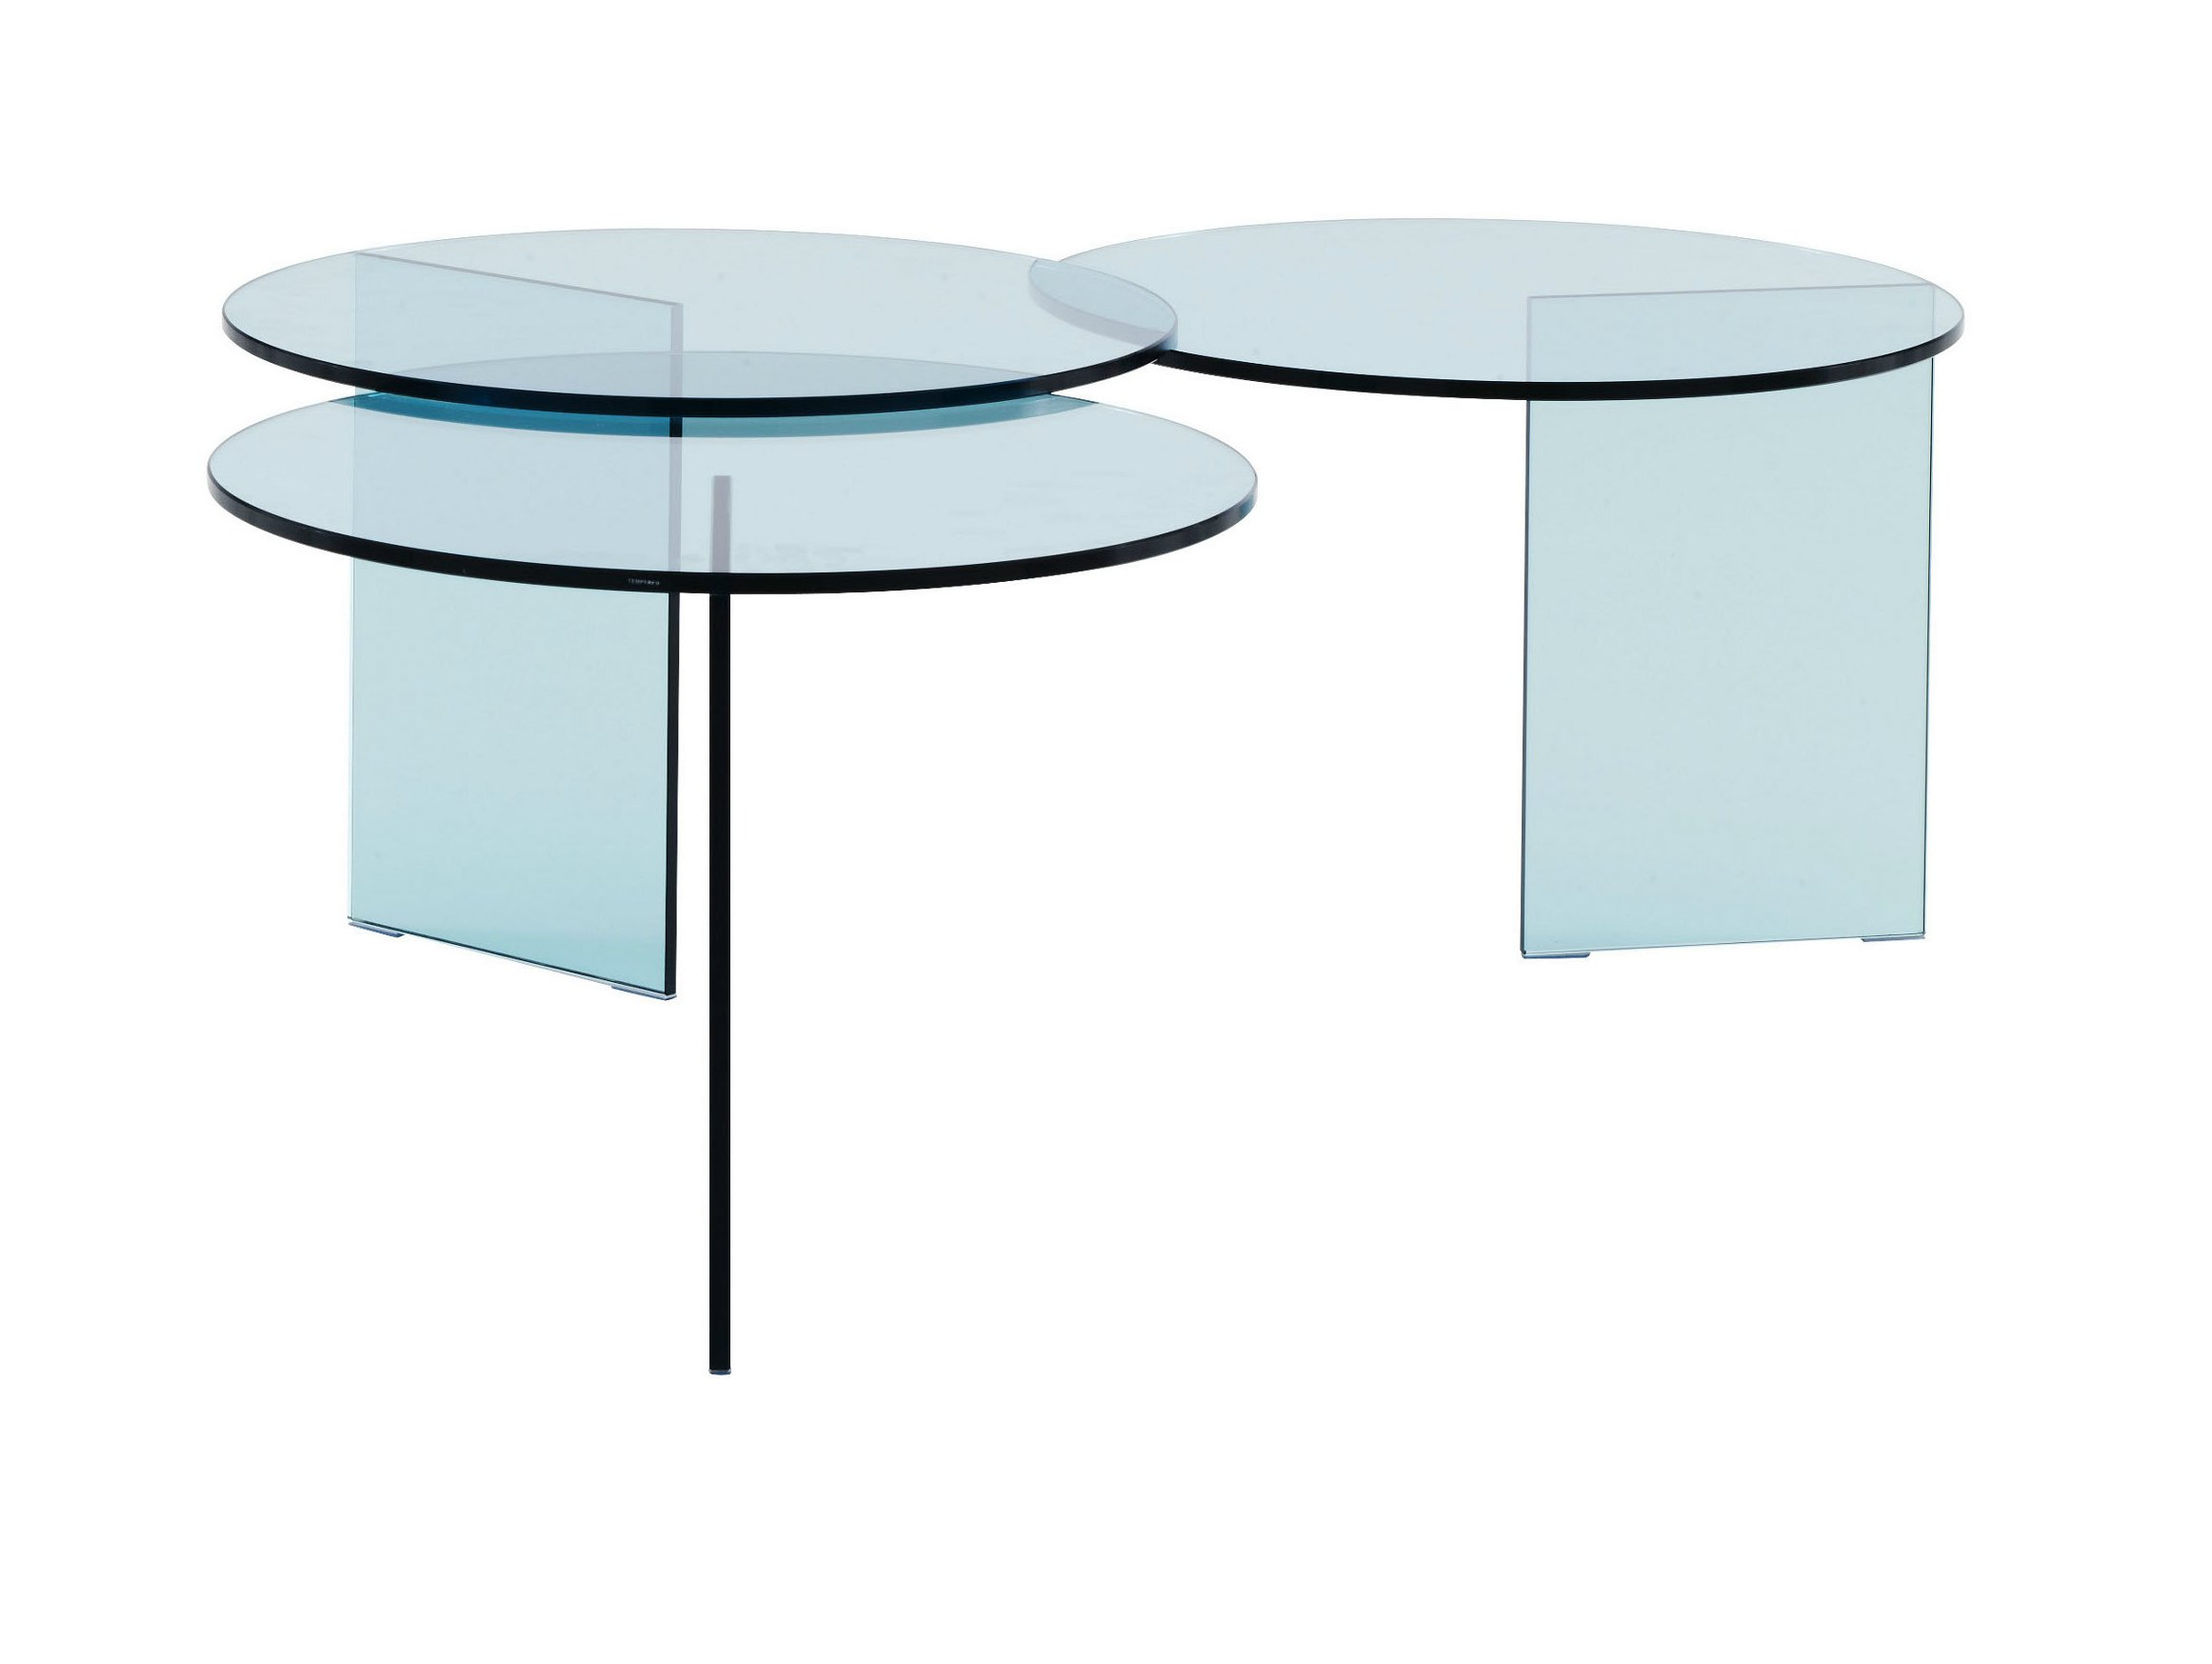 Table basse ronde en verre tremp aoyama by roset italia design no duchaufou - Table ronde verre trempe ...